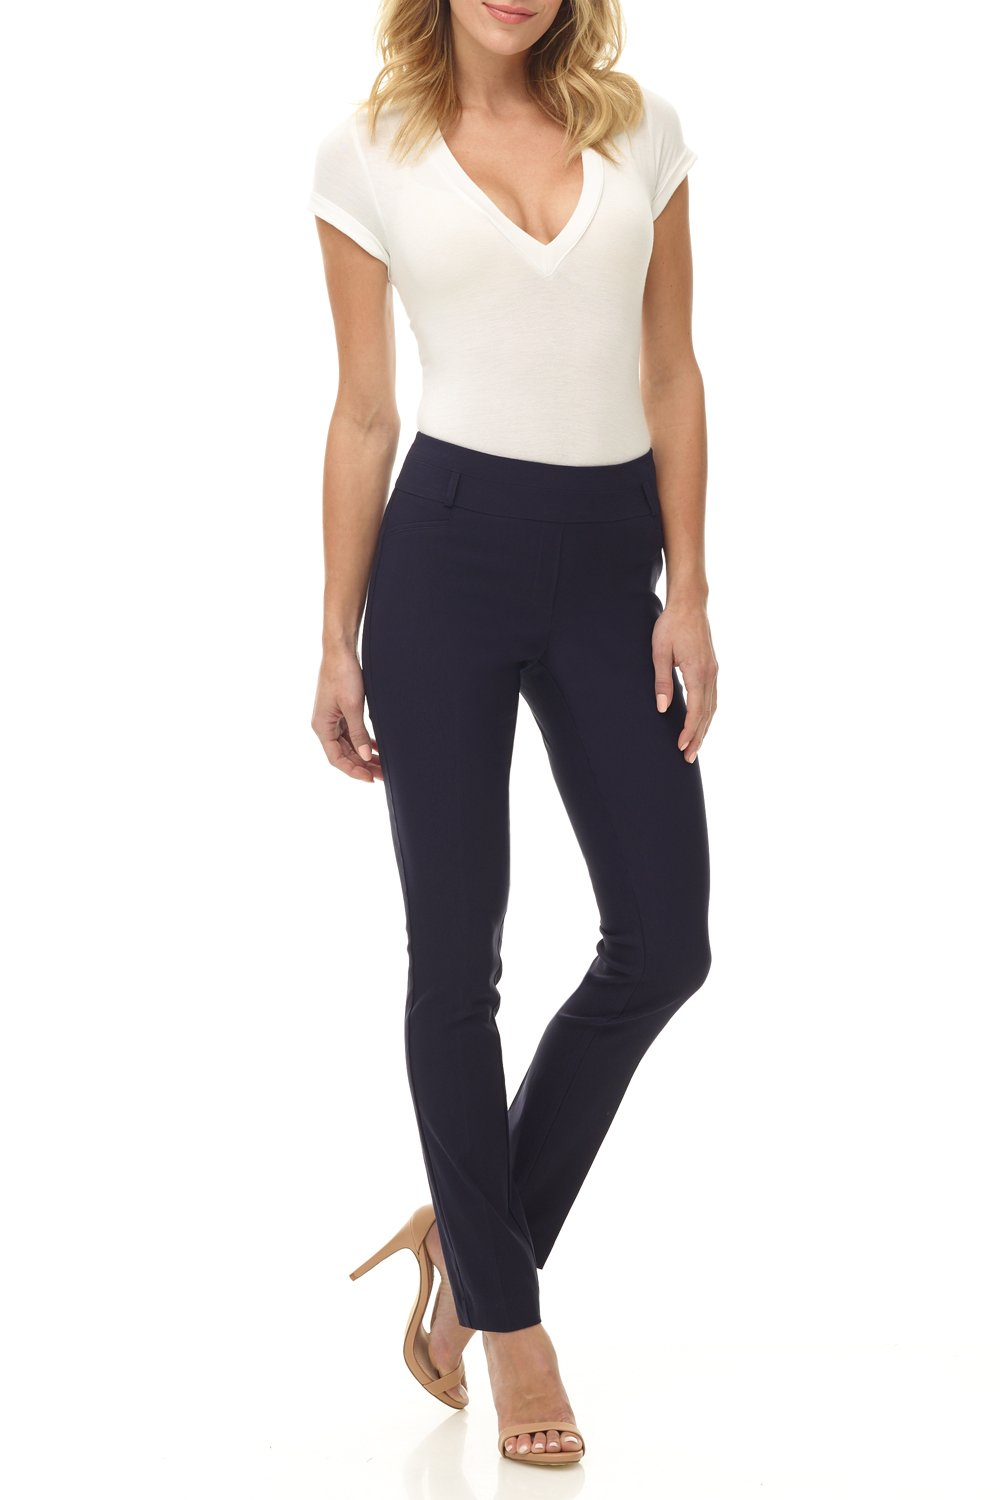 Rekucci Women's Ease in to Comfort Fit Stretch Slim Pant (12,Navy)